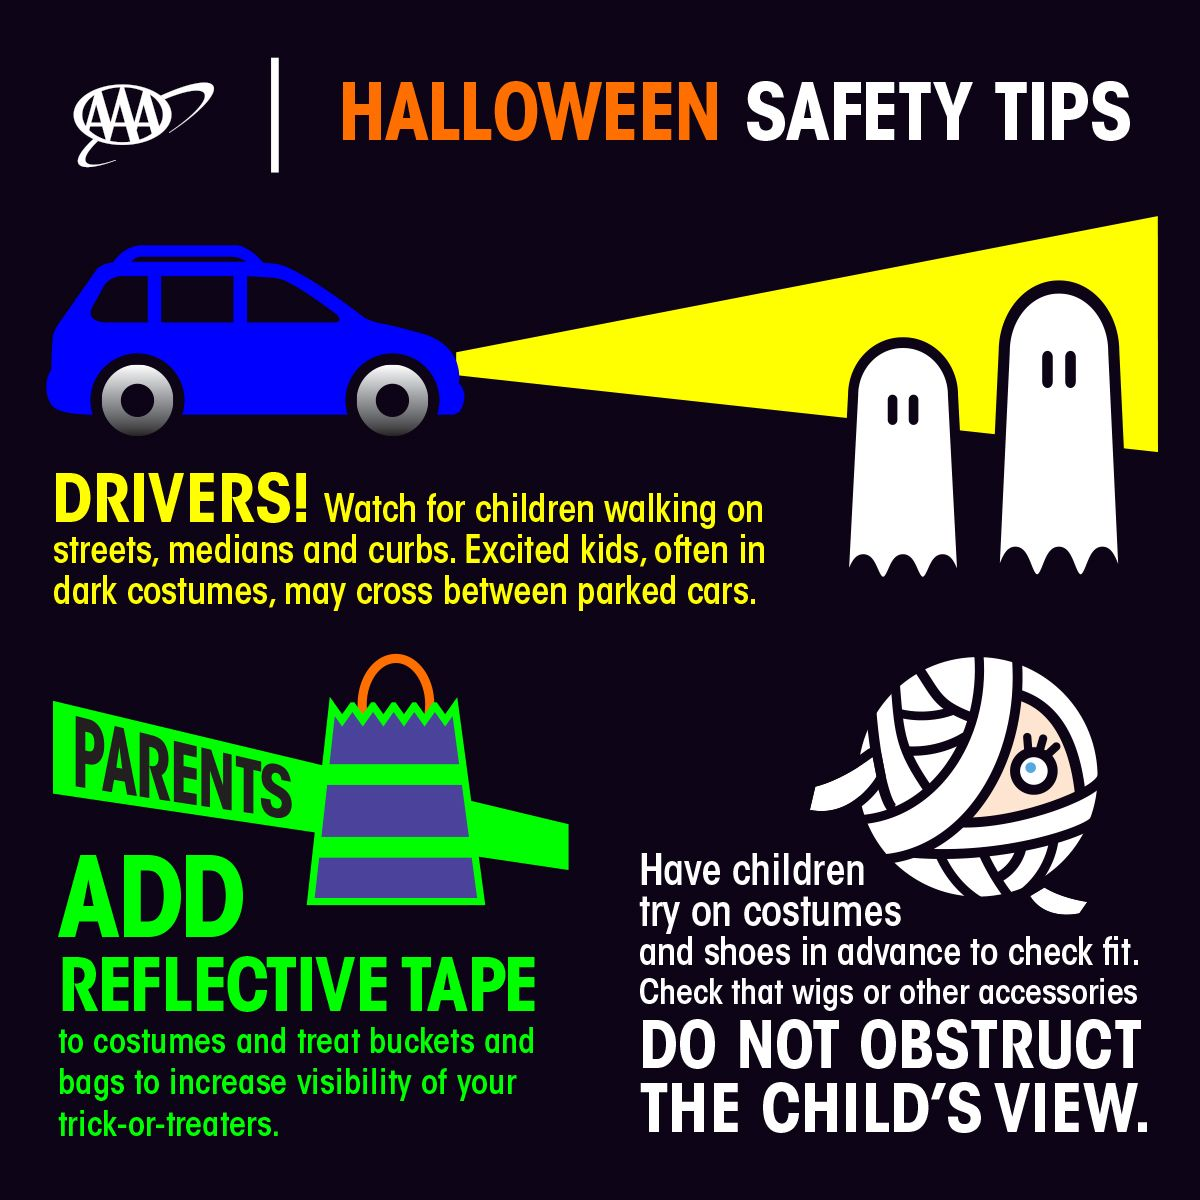 Check out these Halloween safety tips! We love Halloween